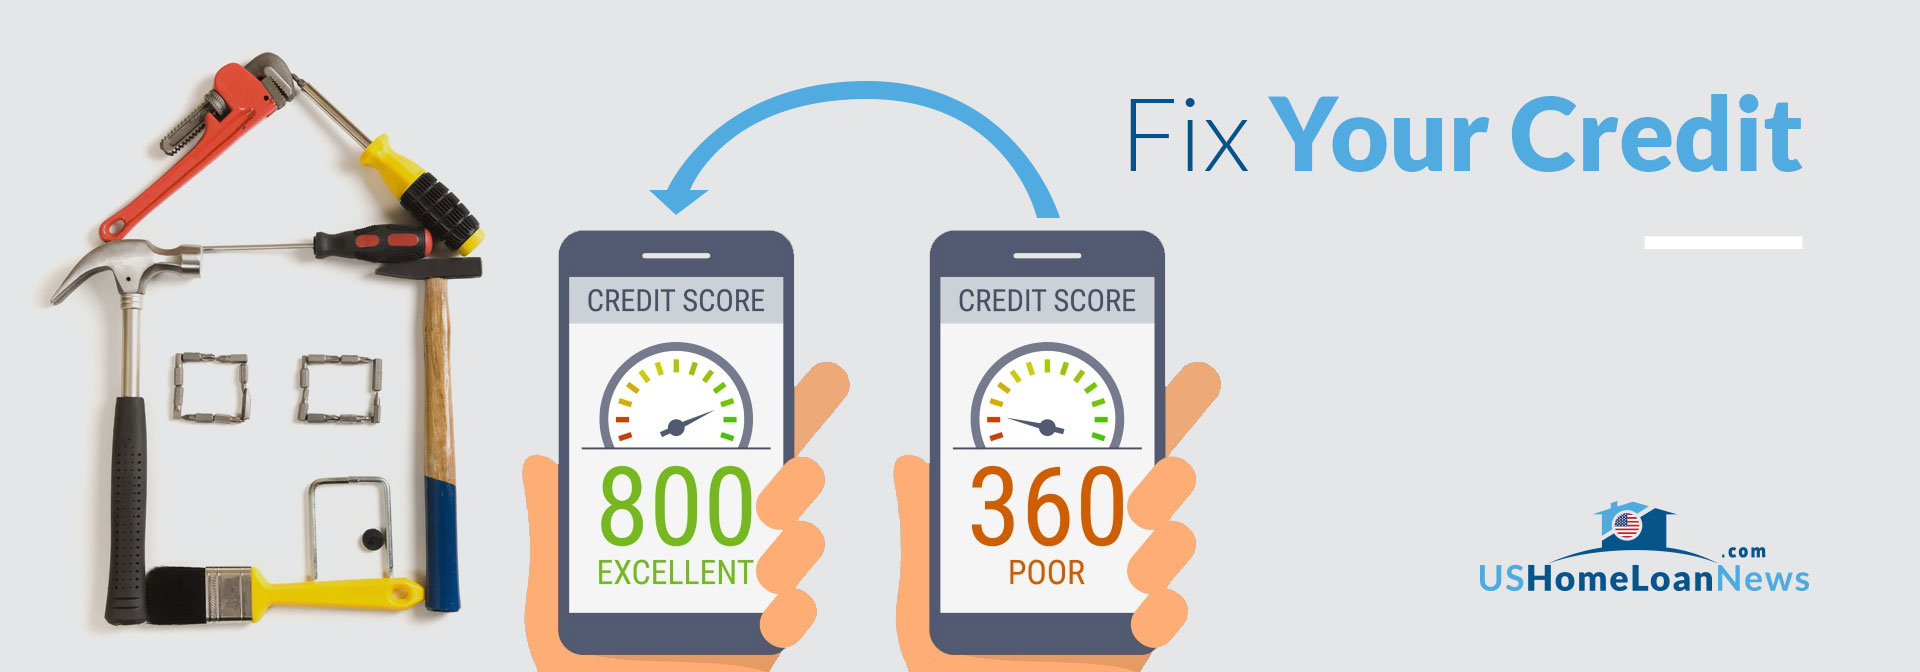 Fix Your Credit Score from bad to good by US Home Loan News